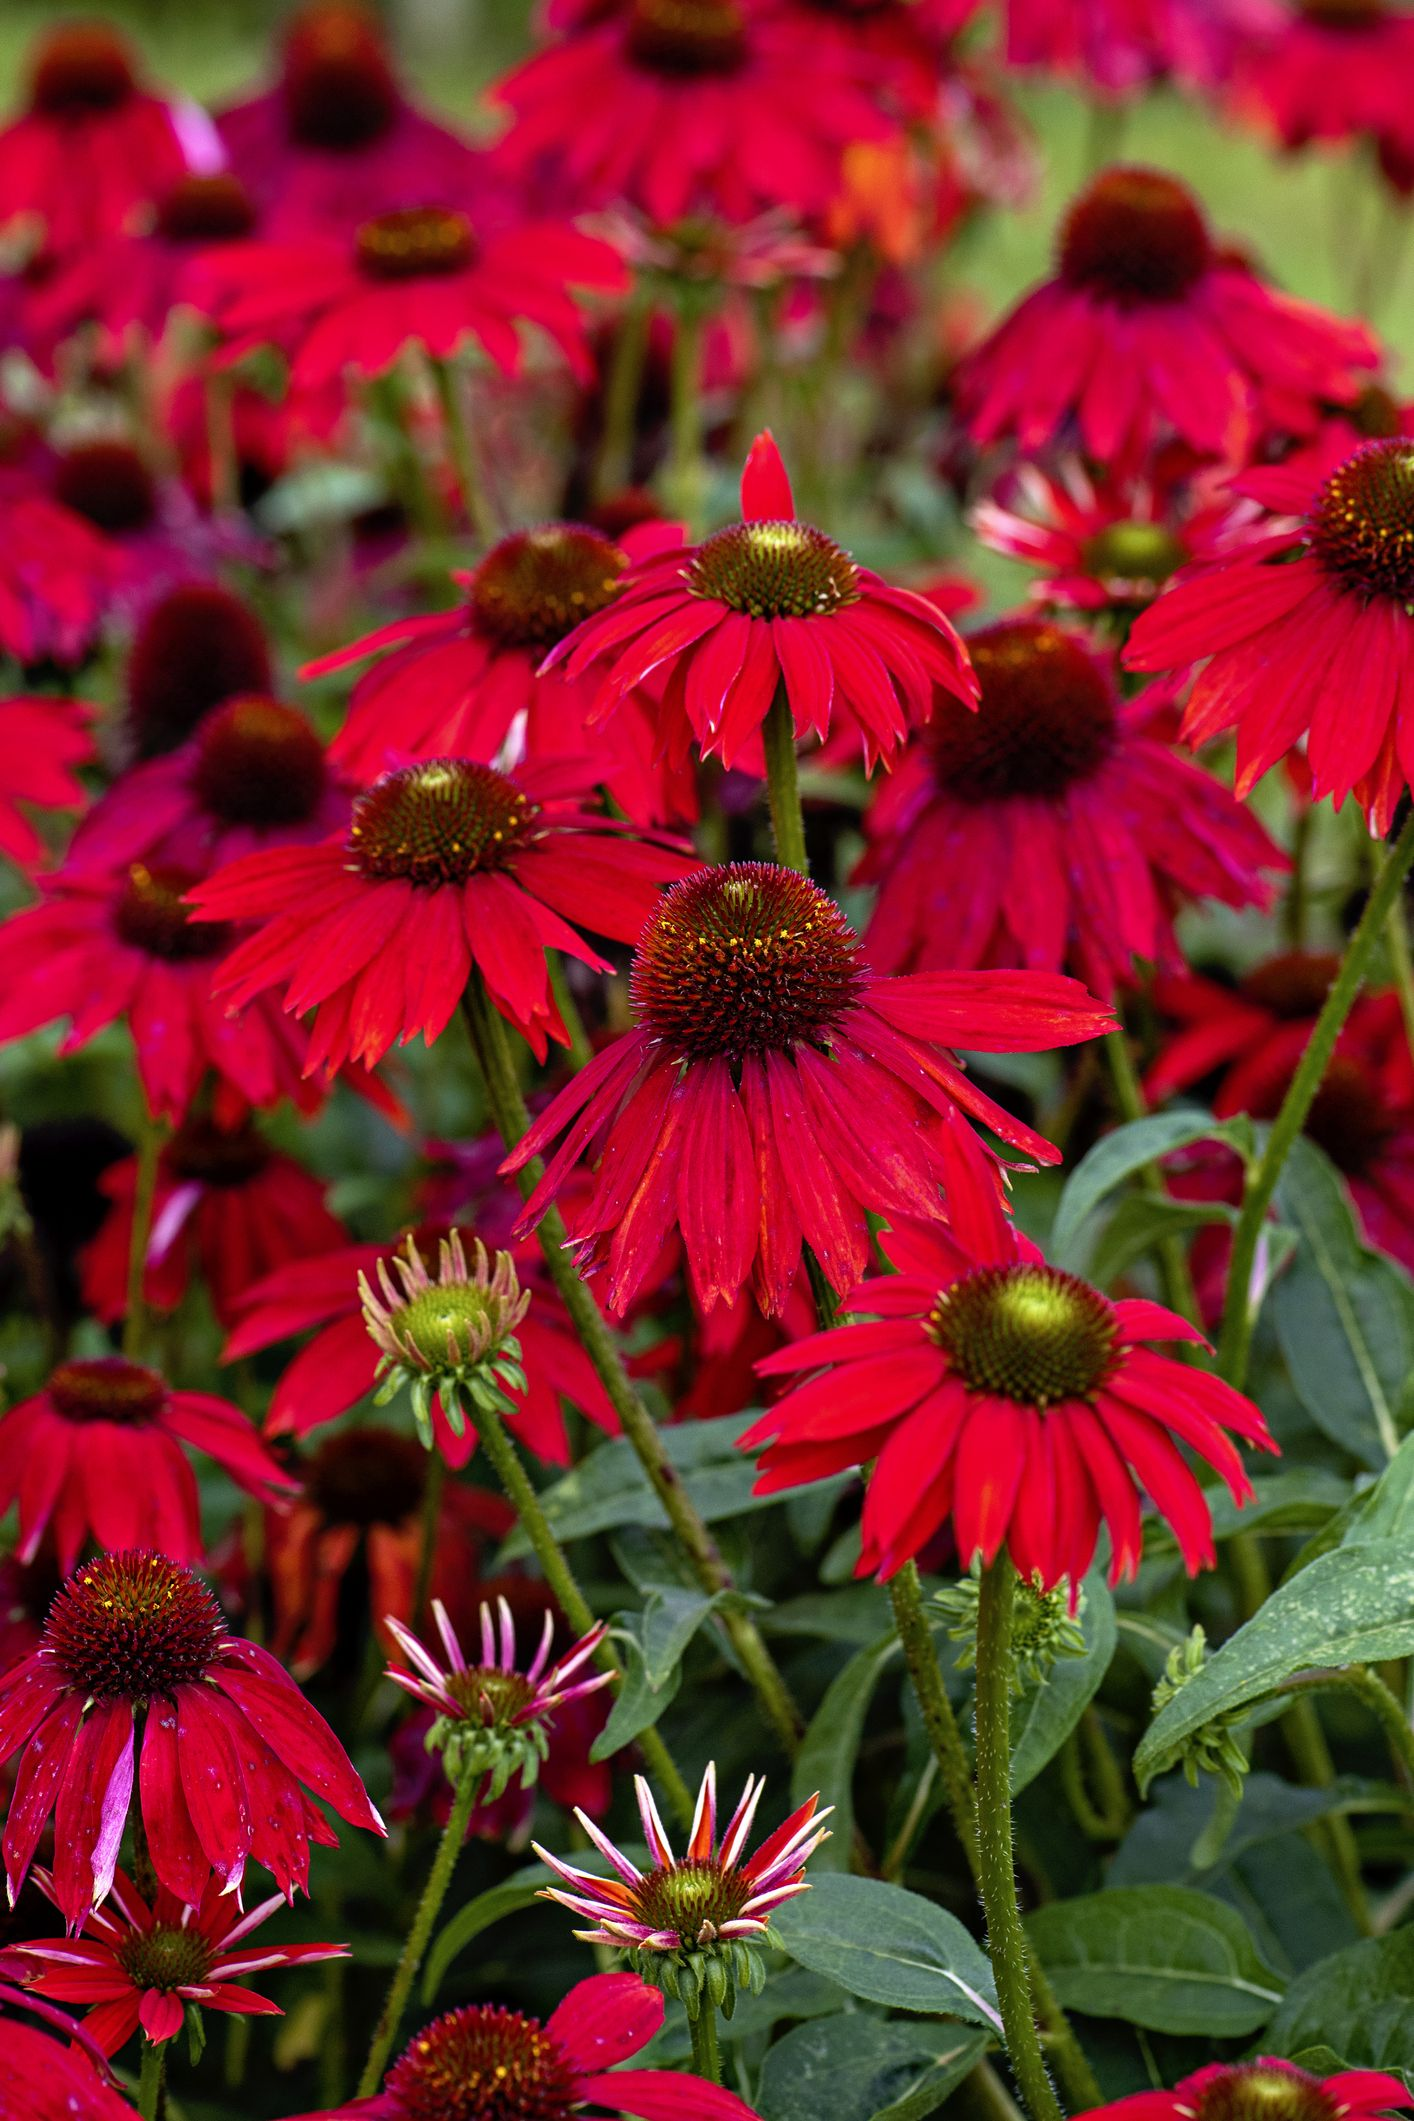 25 Best Red Flowers For Gardens Perennials Annuals With Red Blossoms